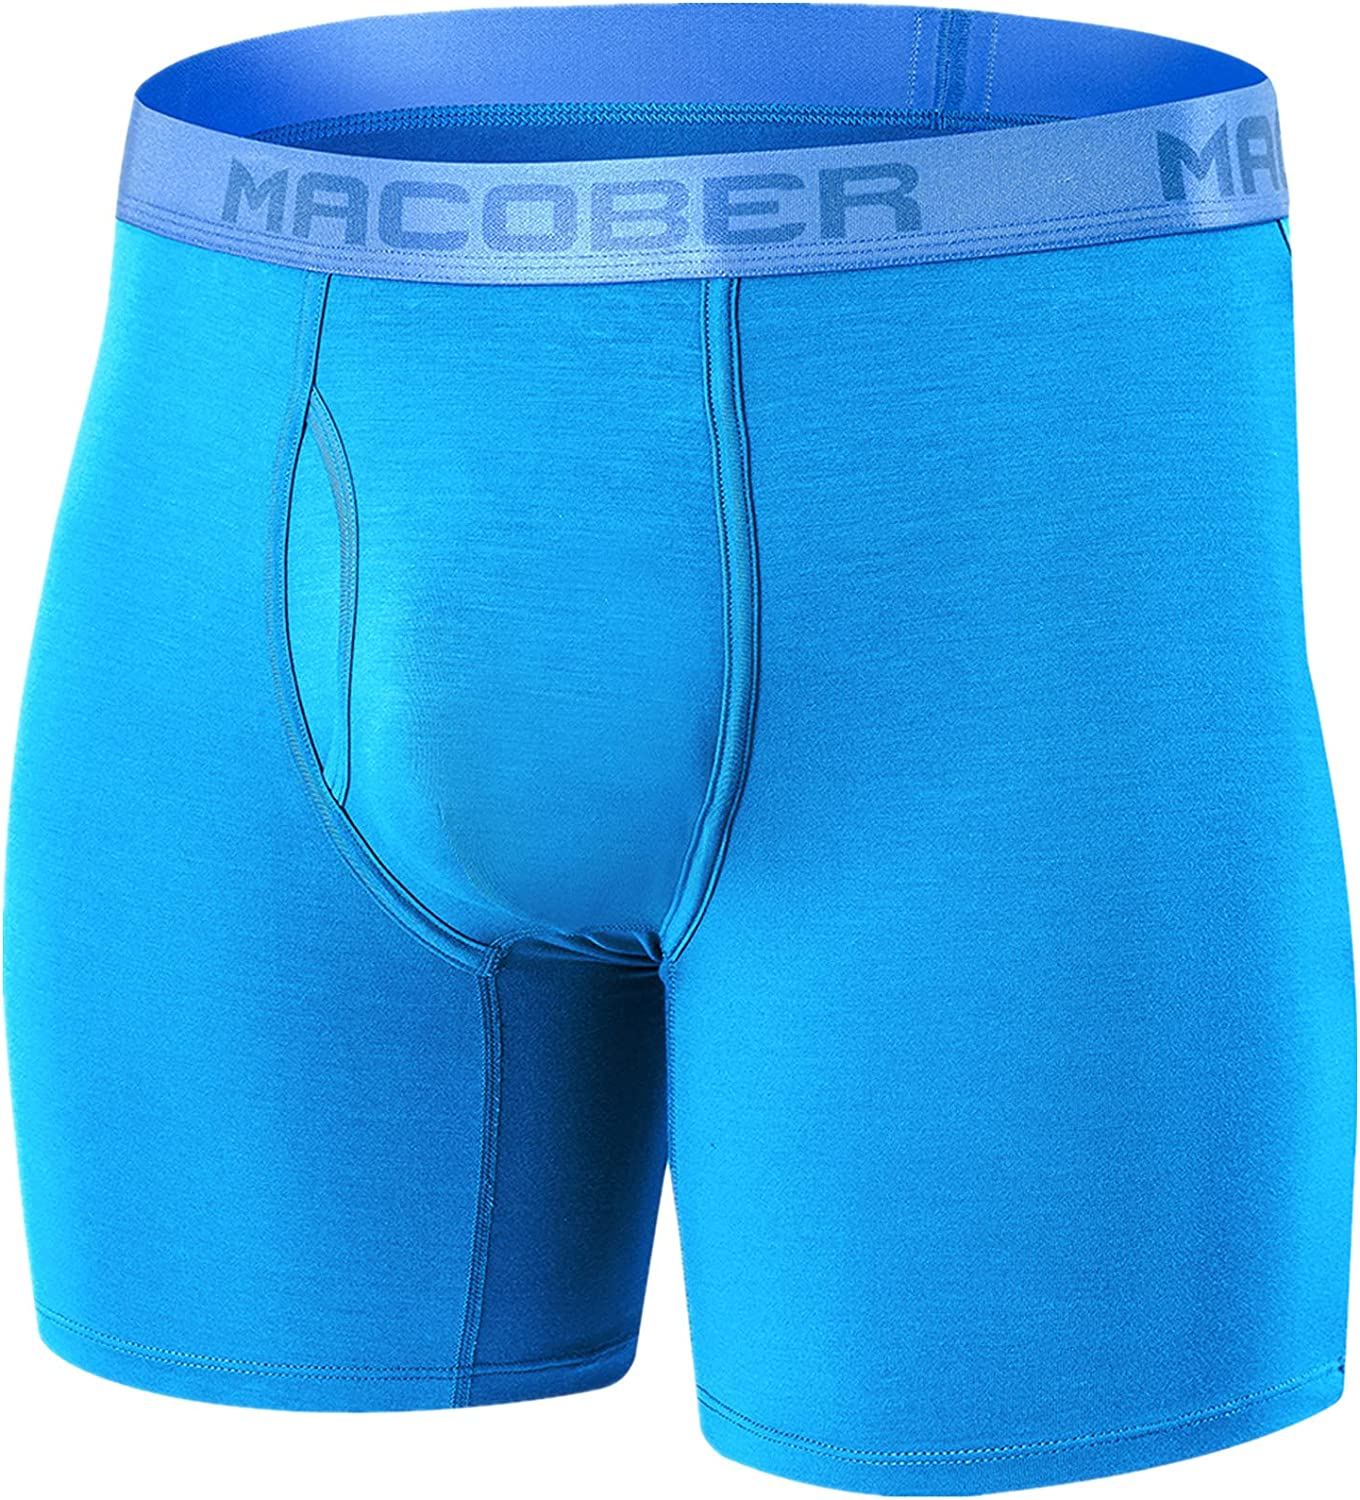 Men's Big and Tall Underwear Cooling Breathable Bamboo No Ride up Male Boxer Briefs Pack M L XL XXL 3XL